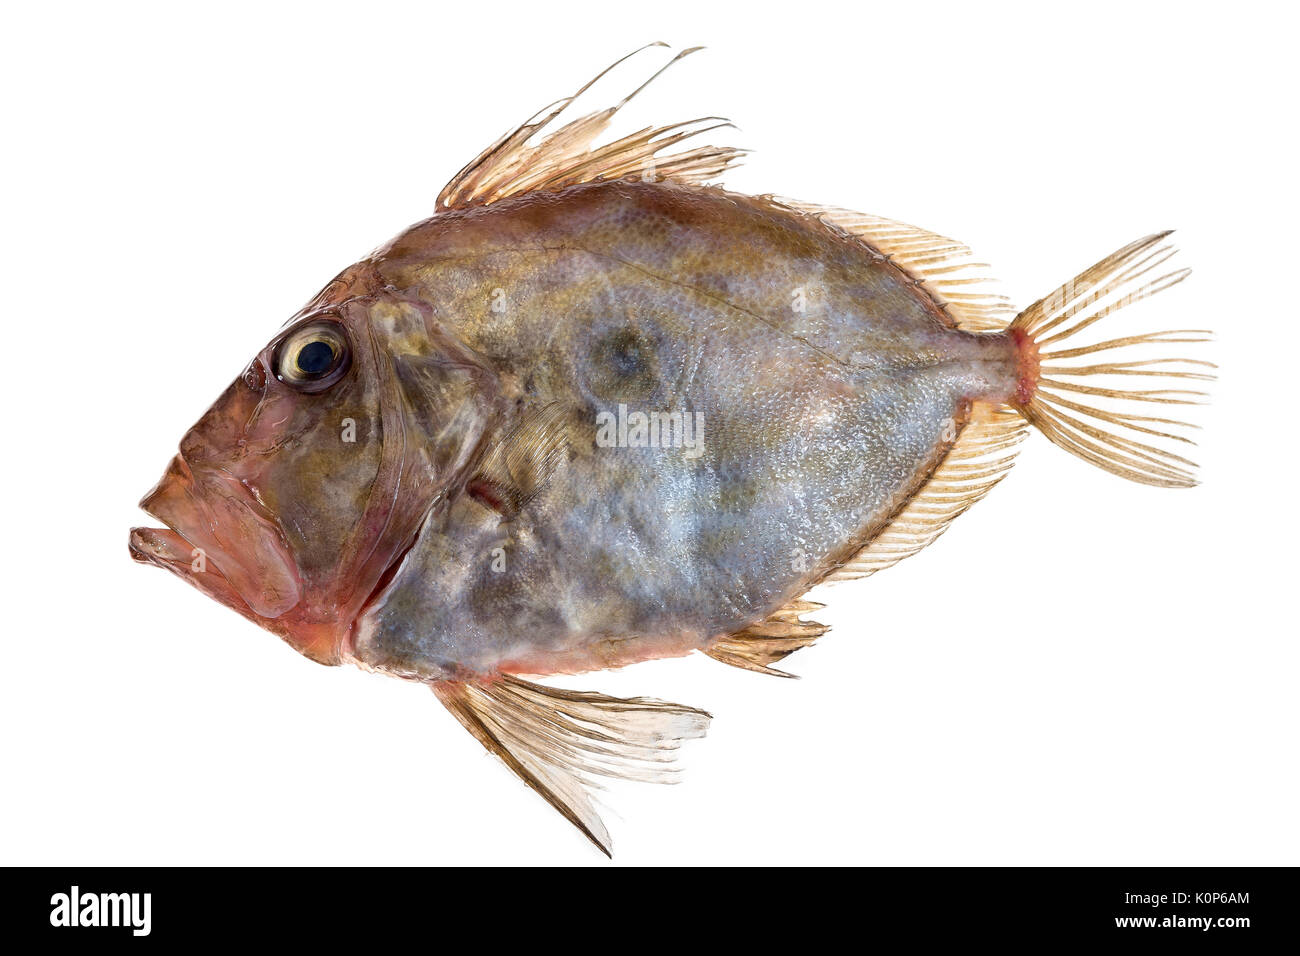 San Pierre Fish in front of white background - Stock Image